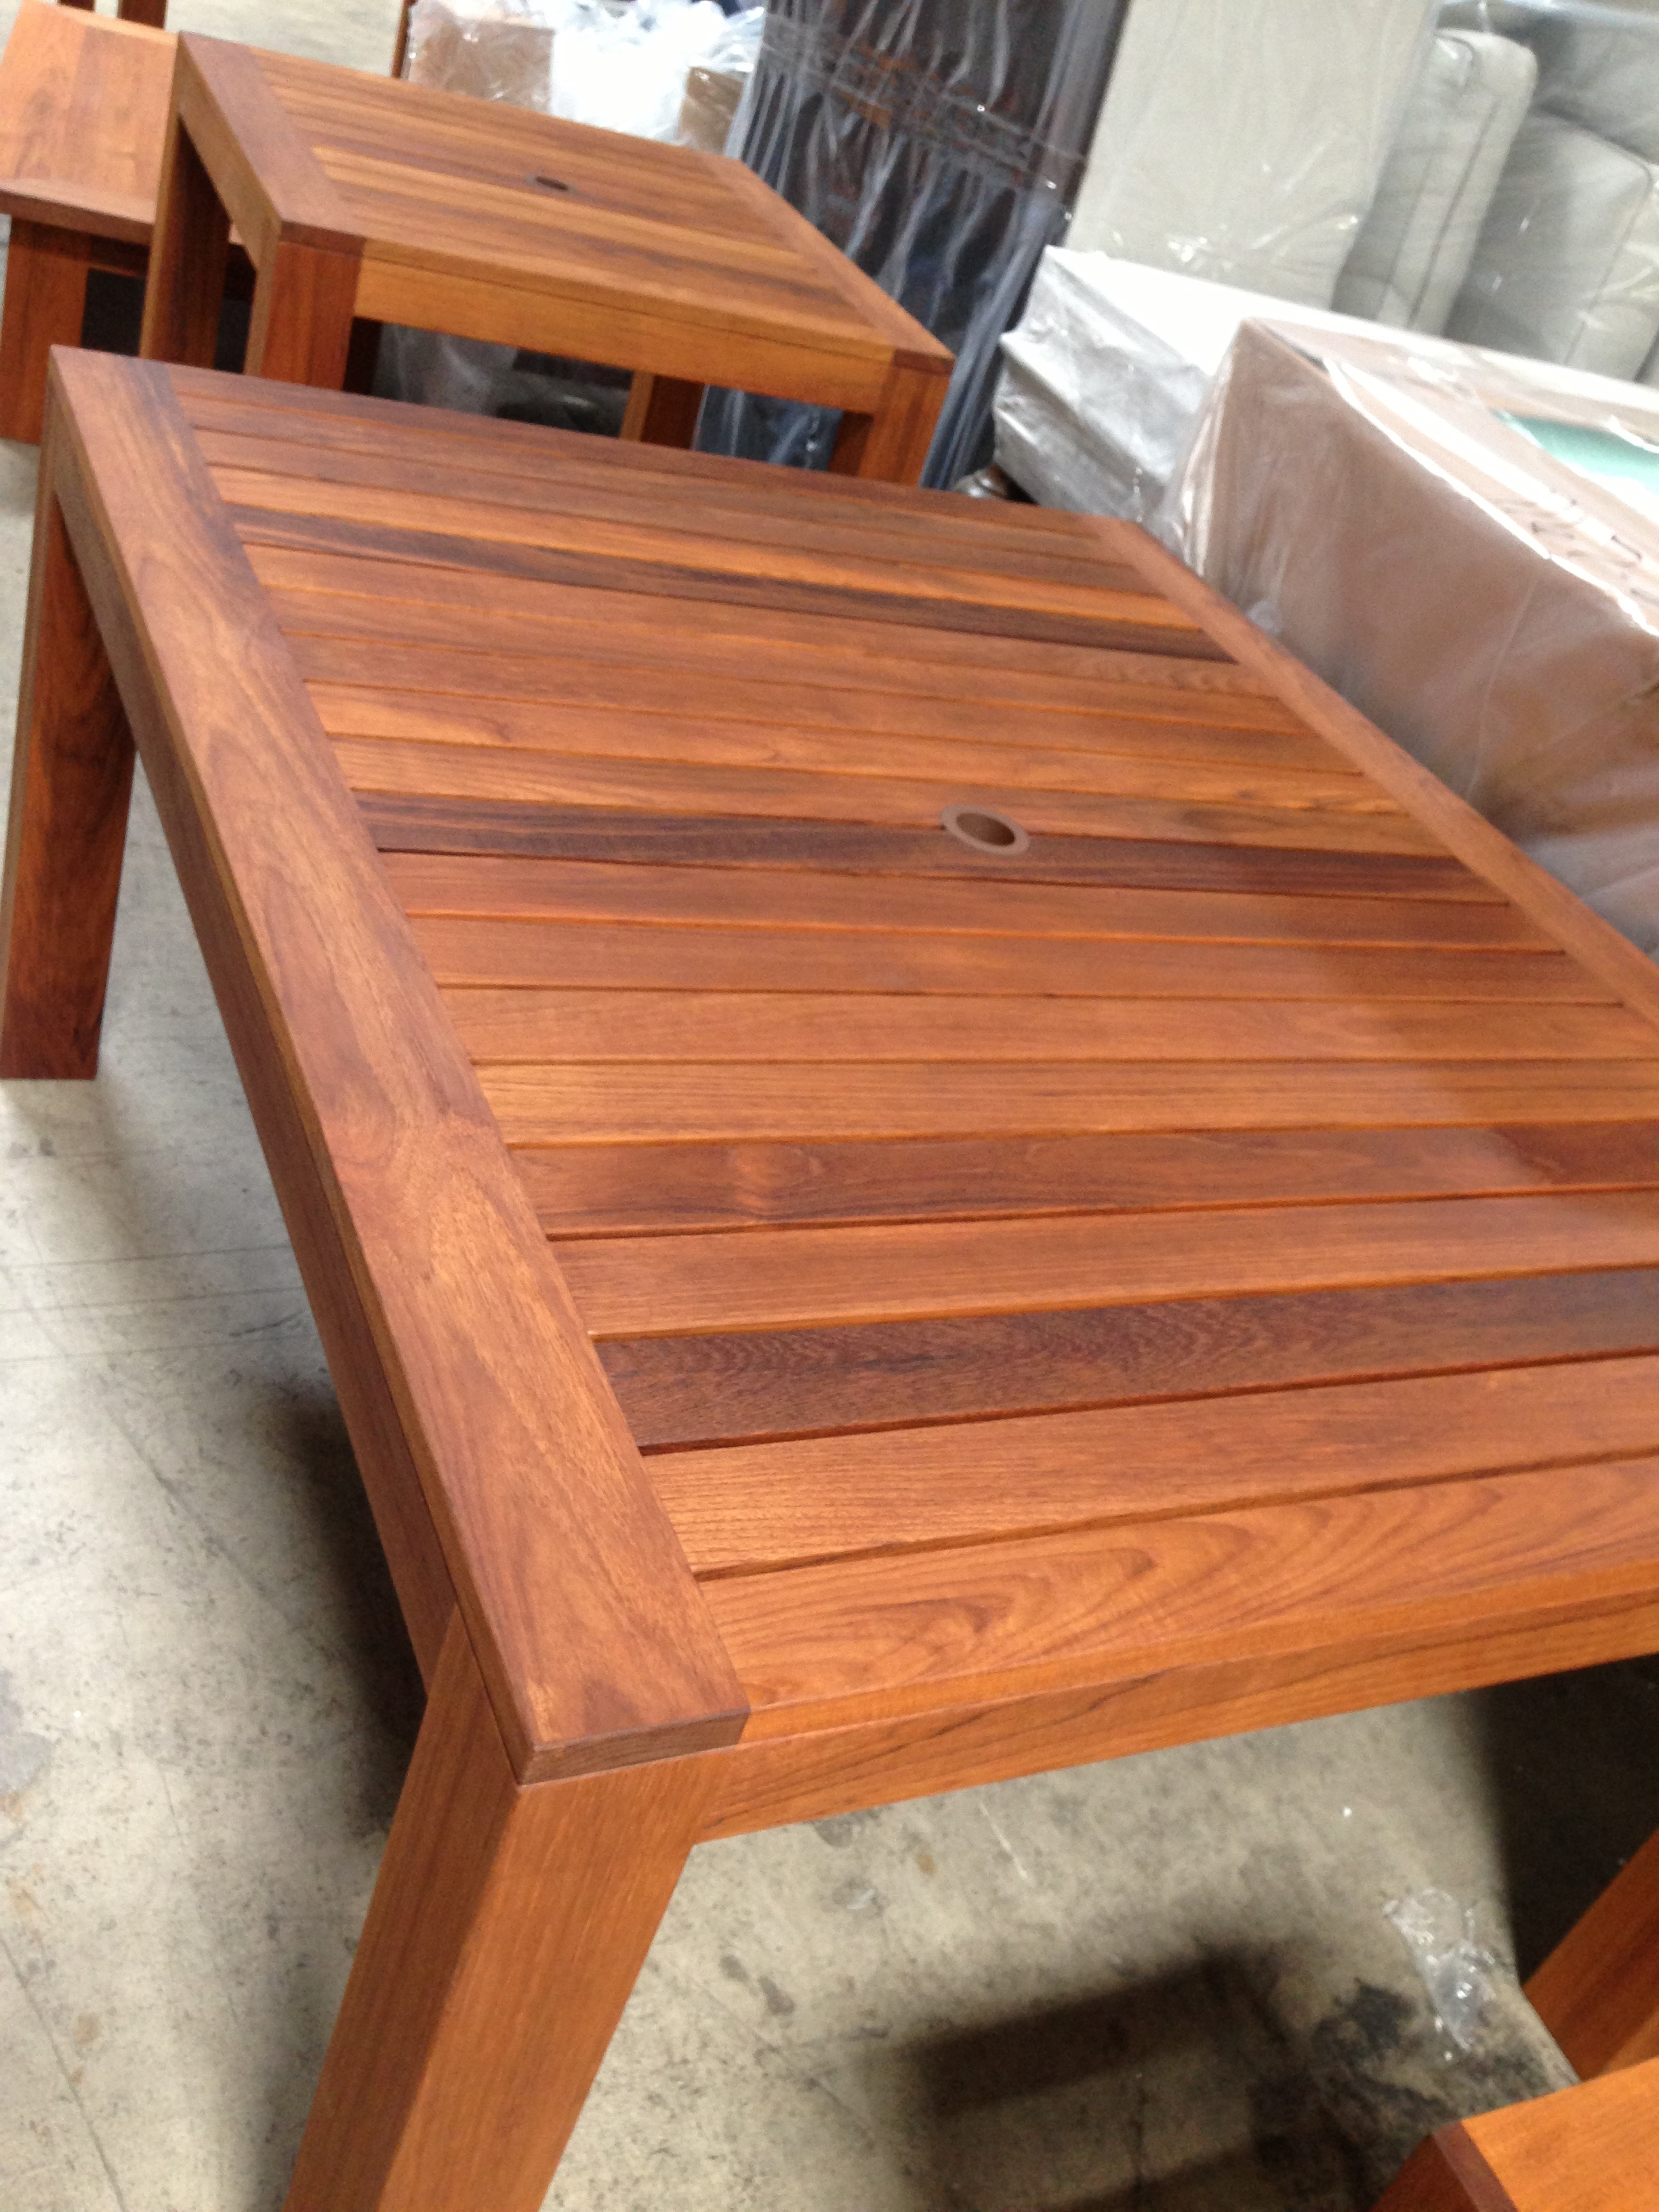 Custom Teak Furniture For Patio And Garden Jose Bejarano